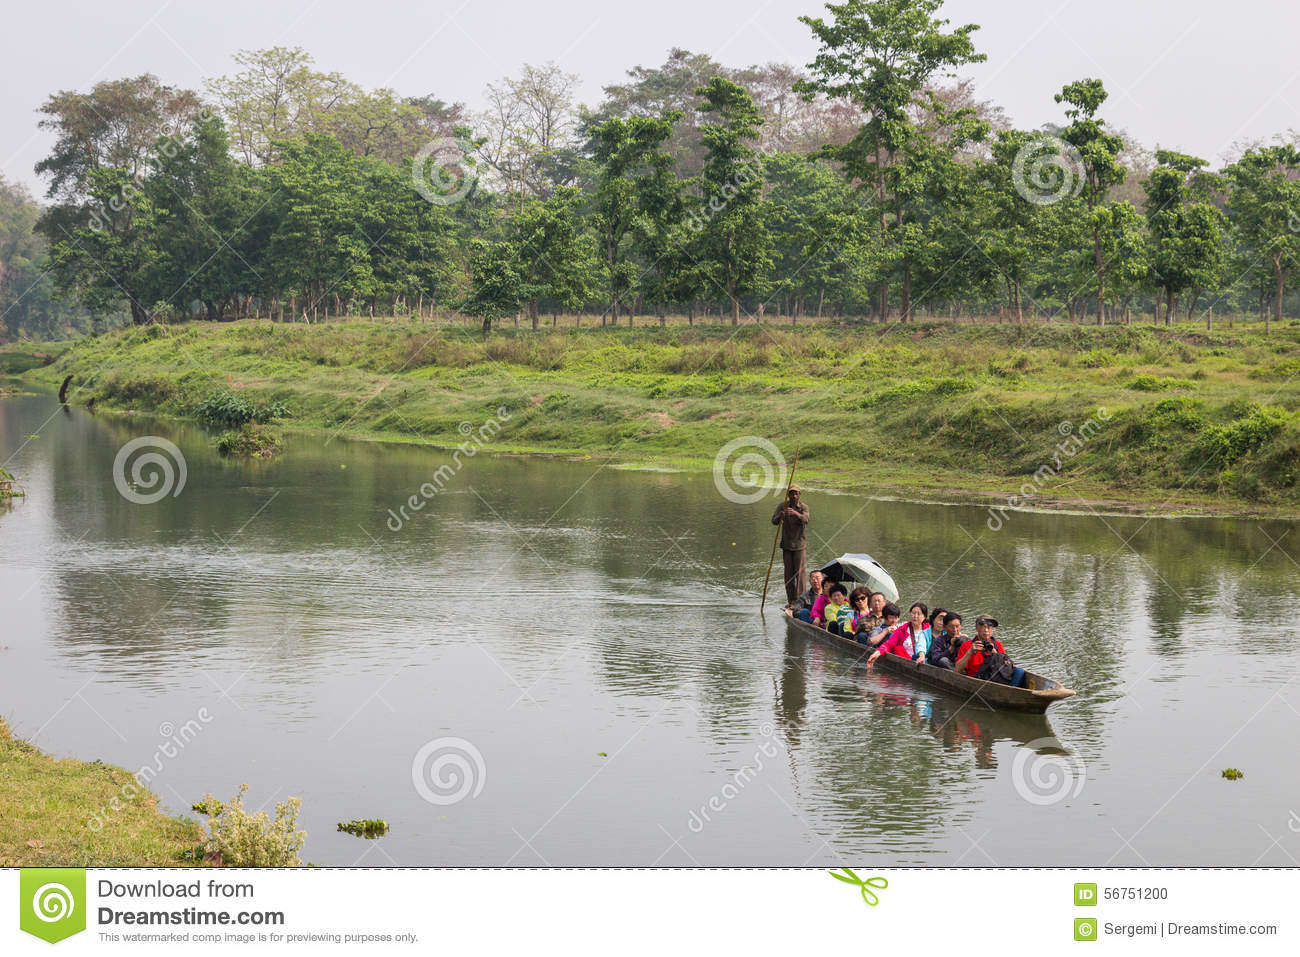 Chitwan Nepal  city photos gallery : CHITWAN NEPAL MARCH 27: Fartygsafari 27, 2015 i Chitwan, Nepal Safari ...